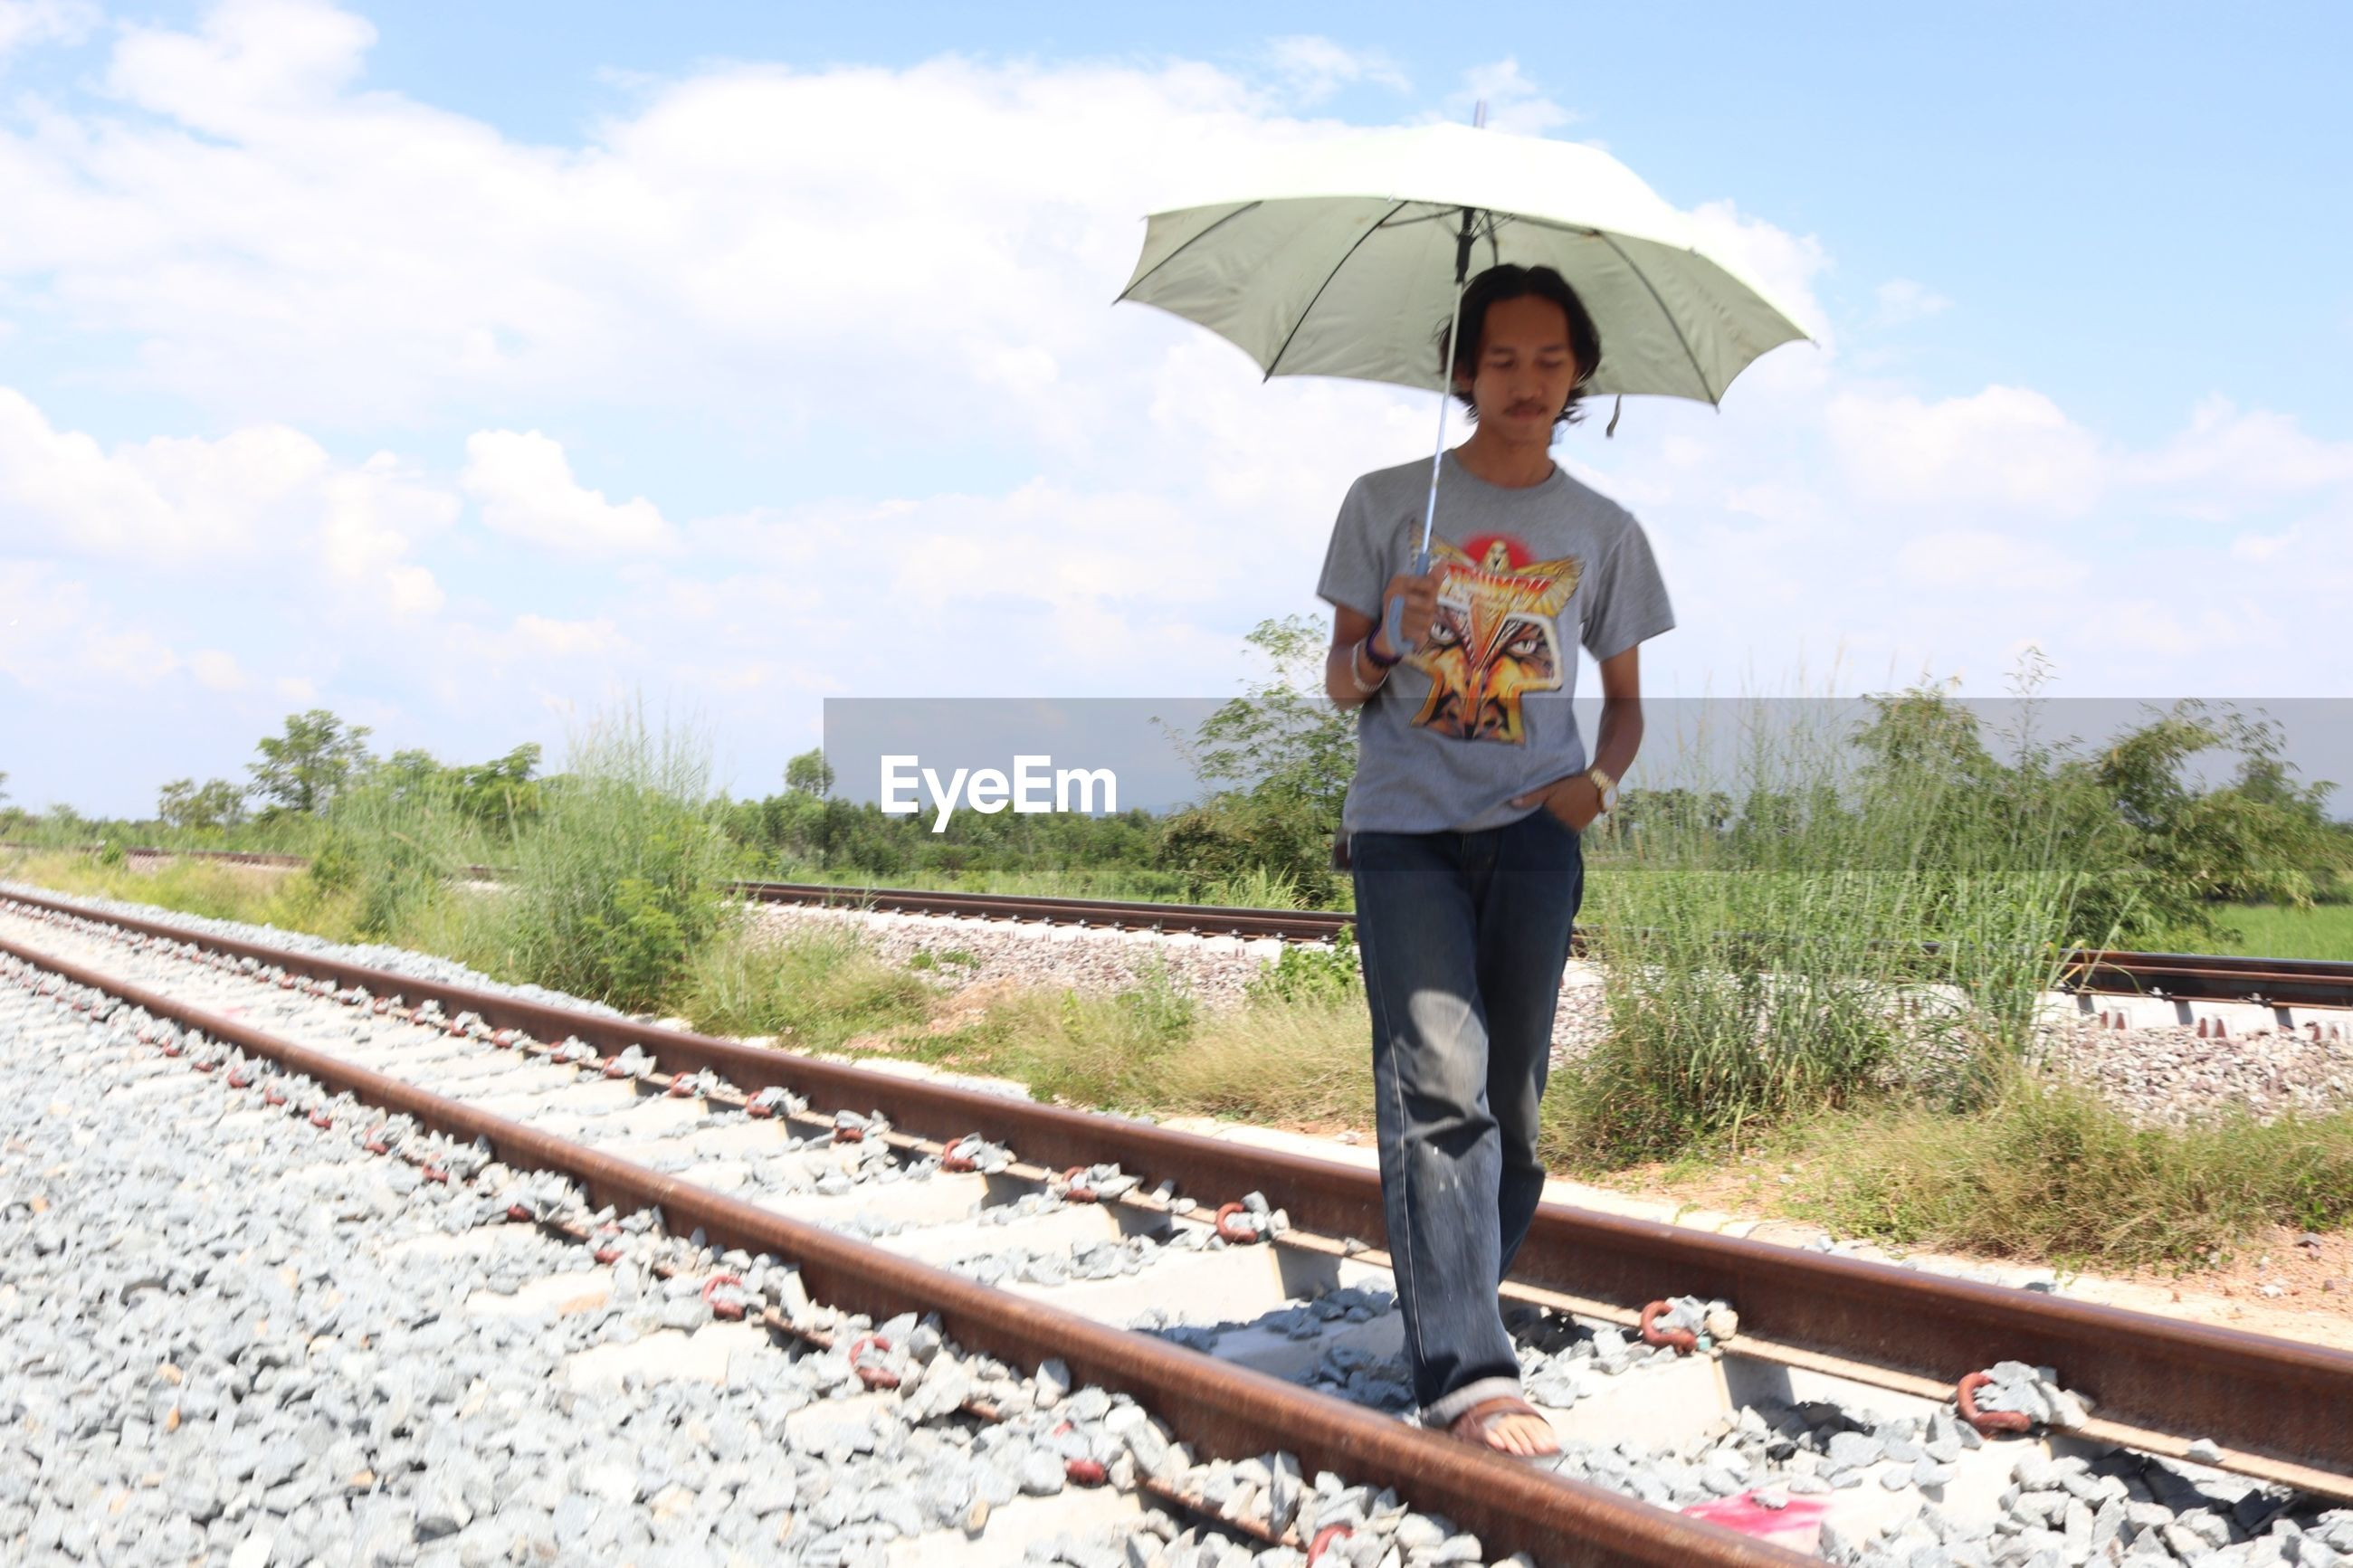 Man holding umbrella standing on railroad track against sky